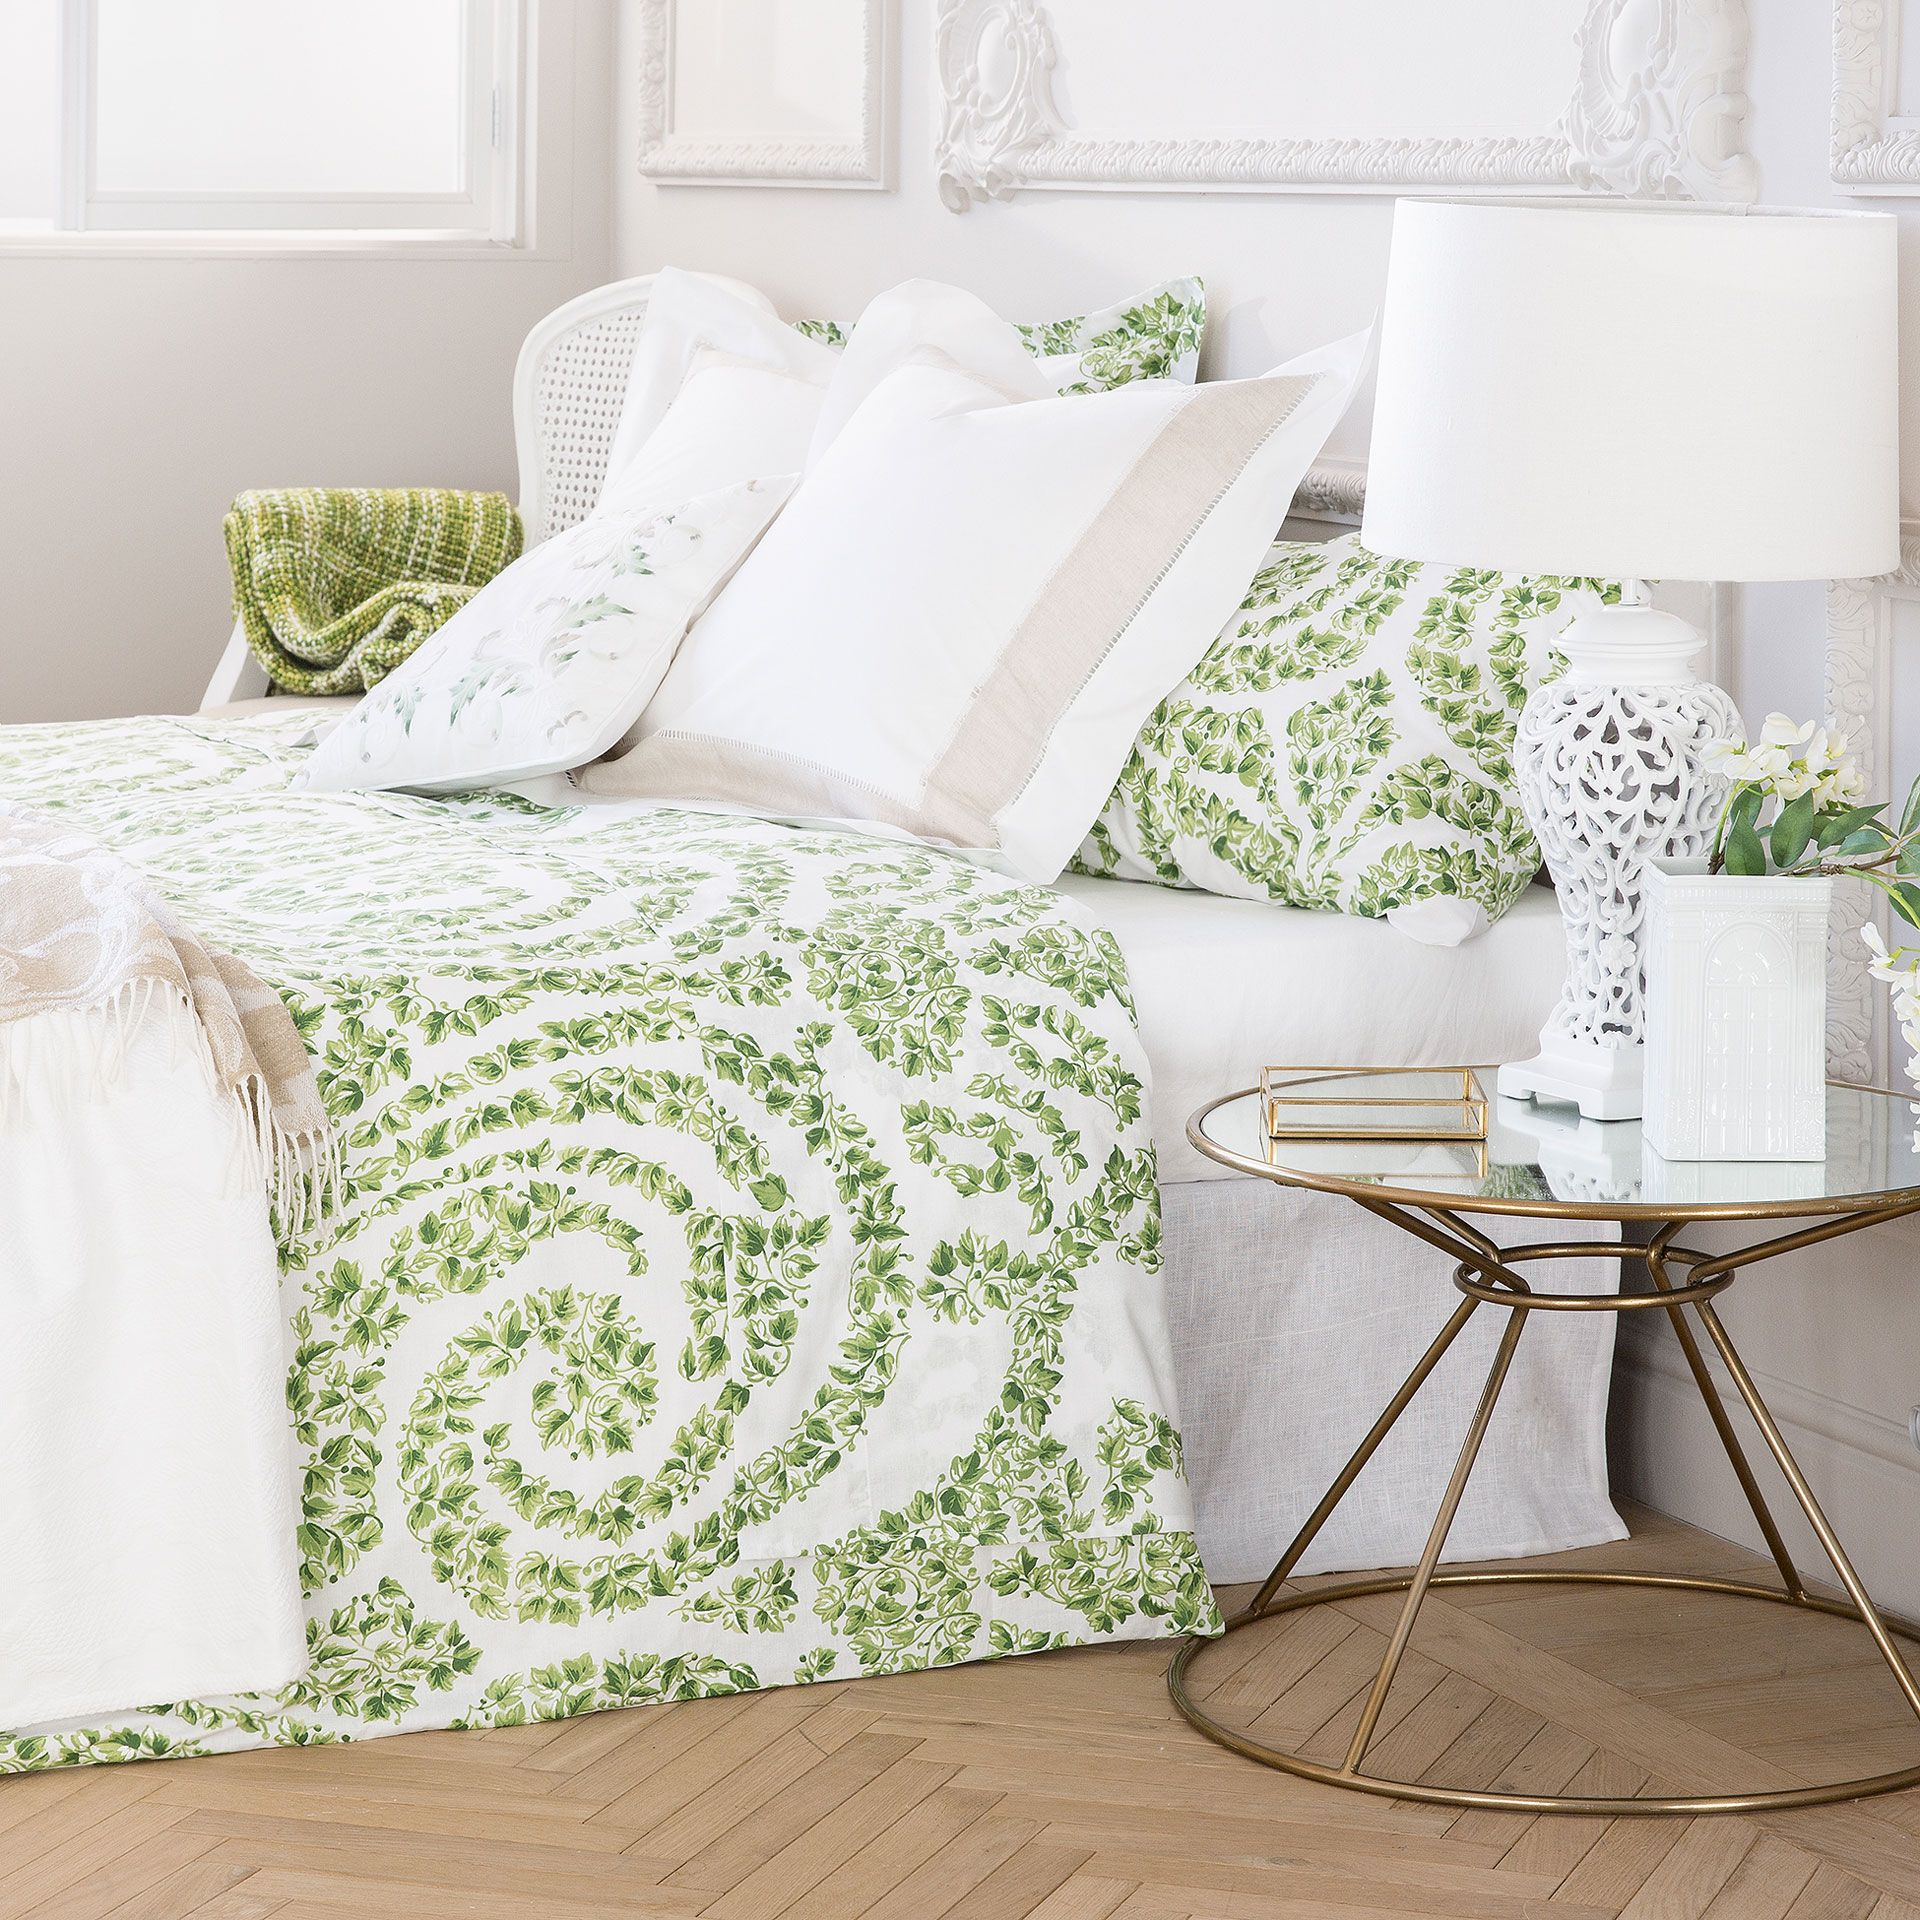 IVY PRINT BED LINEN - Special Prices